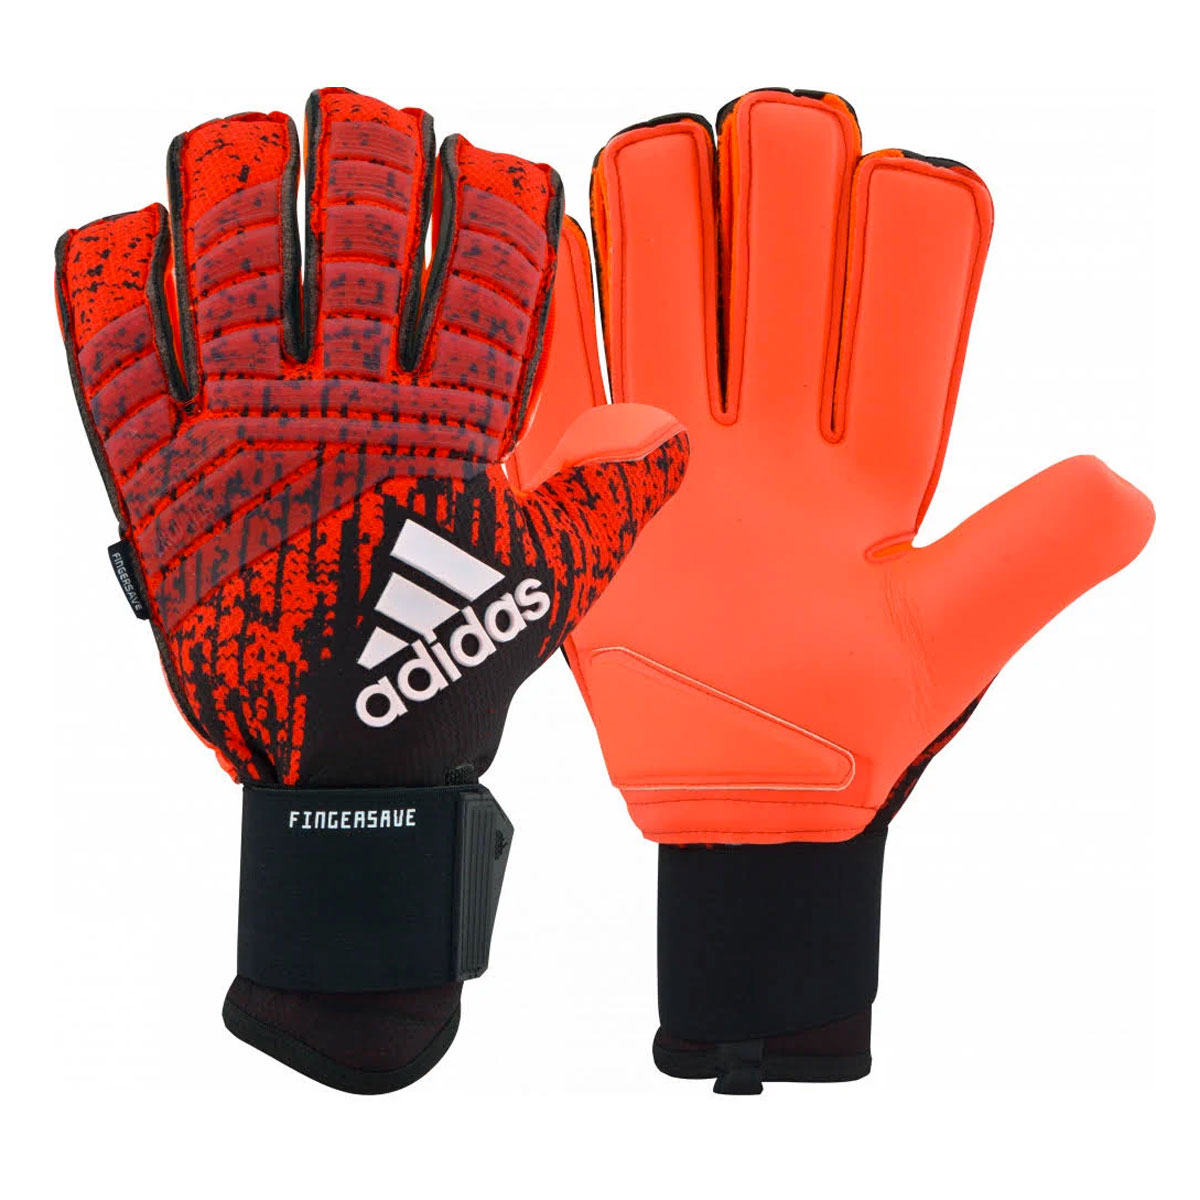 first look newest collection sale usa online Adidas Predator Pro Fingersave Keepershandschoenen